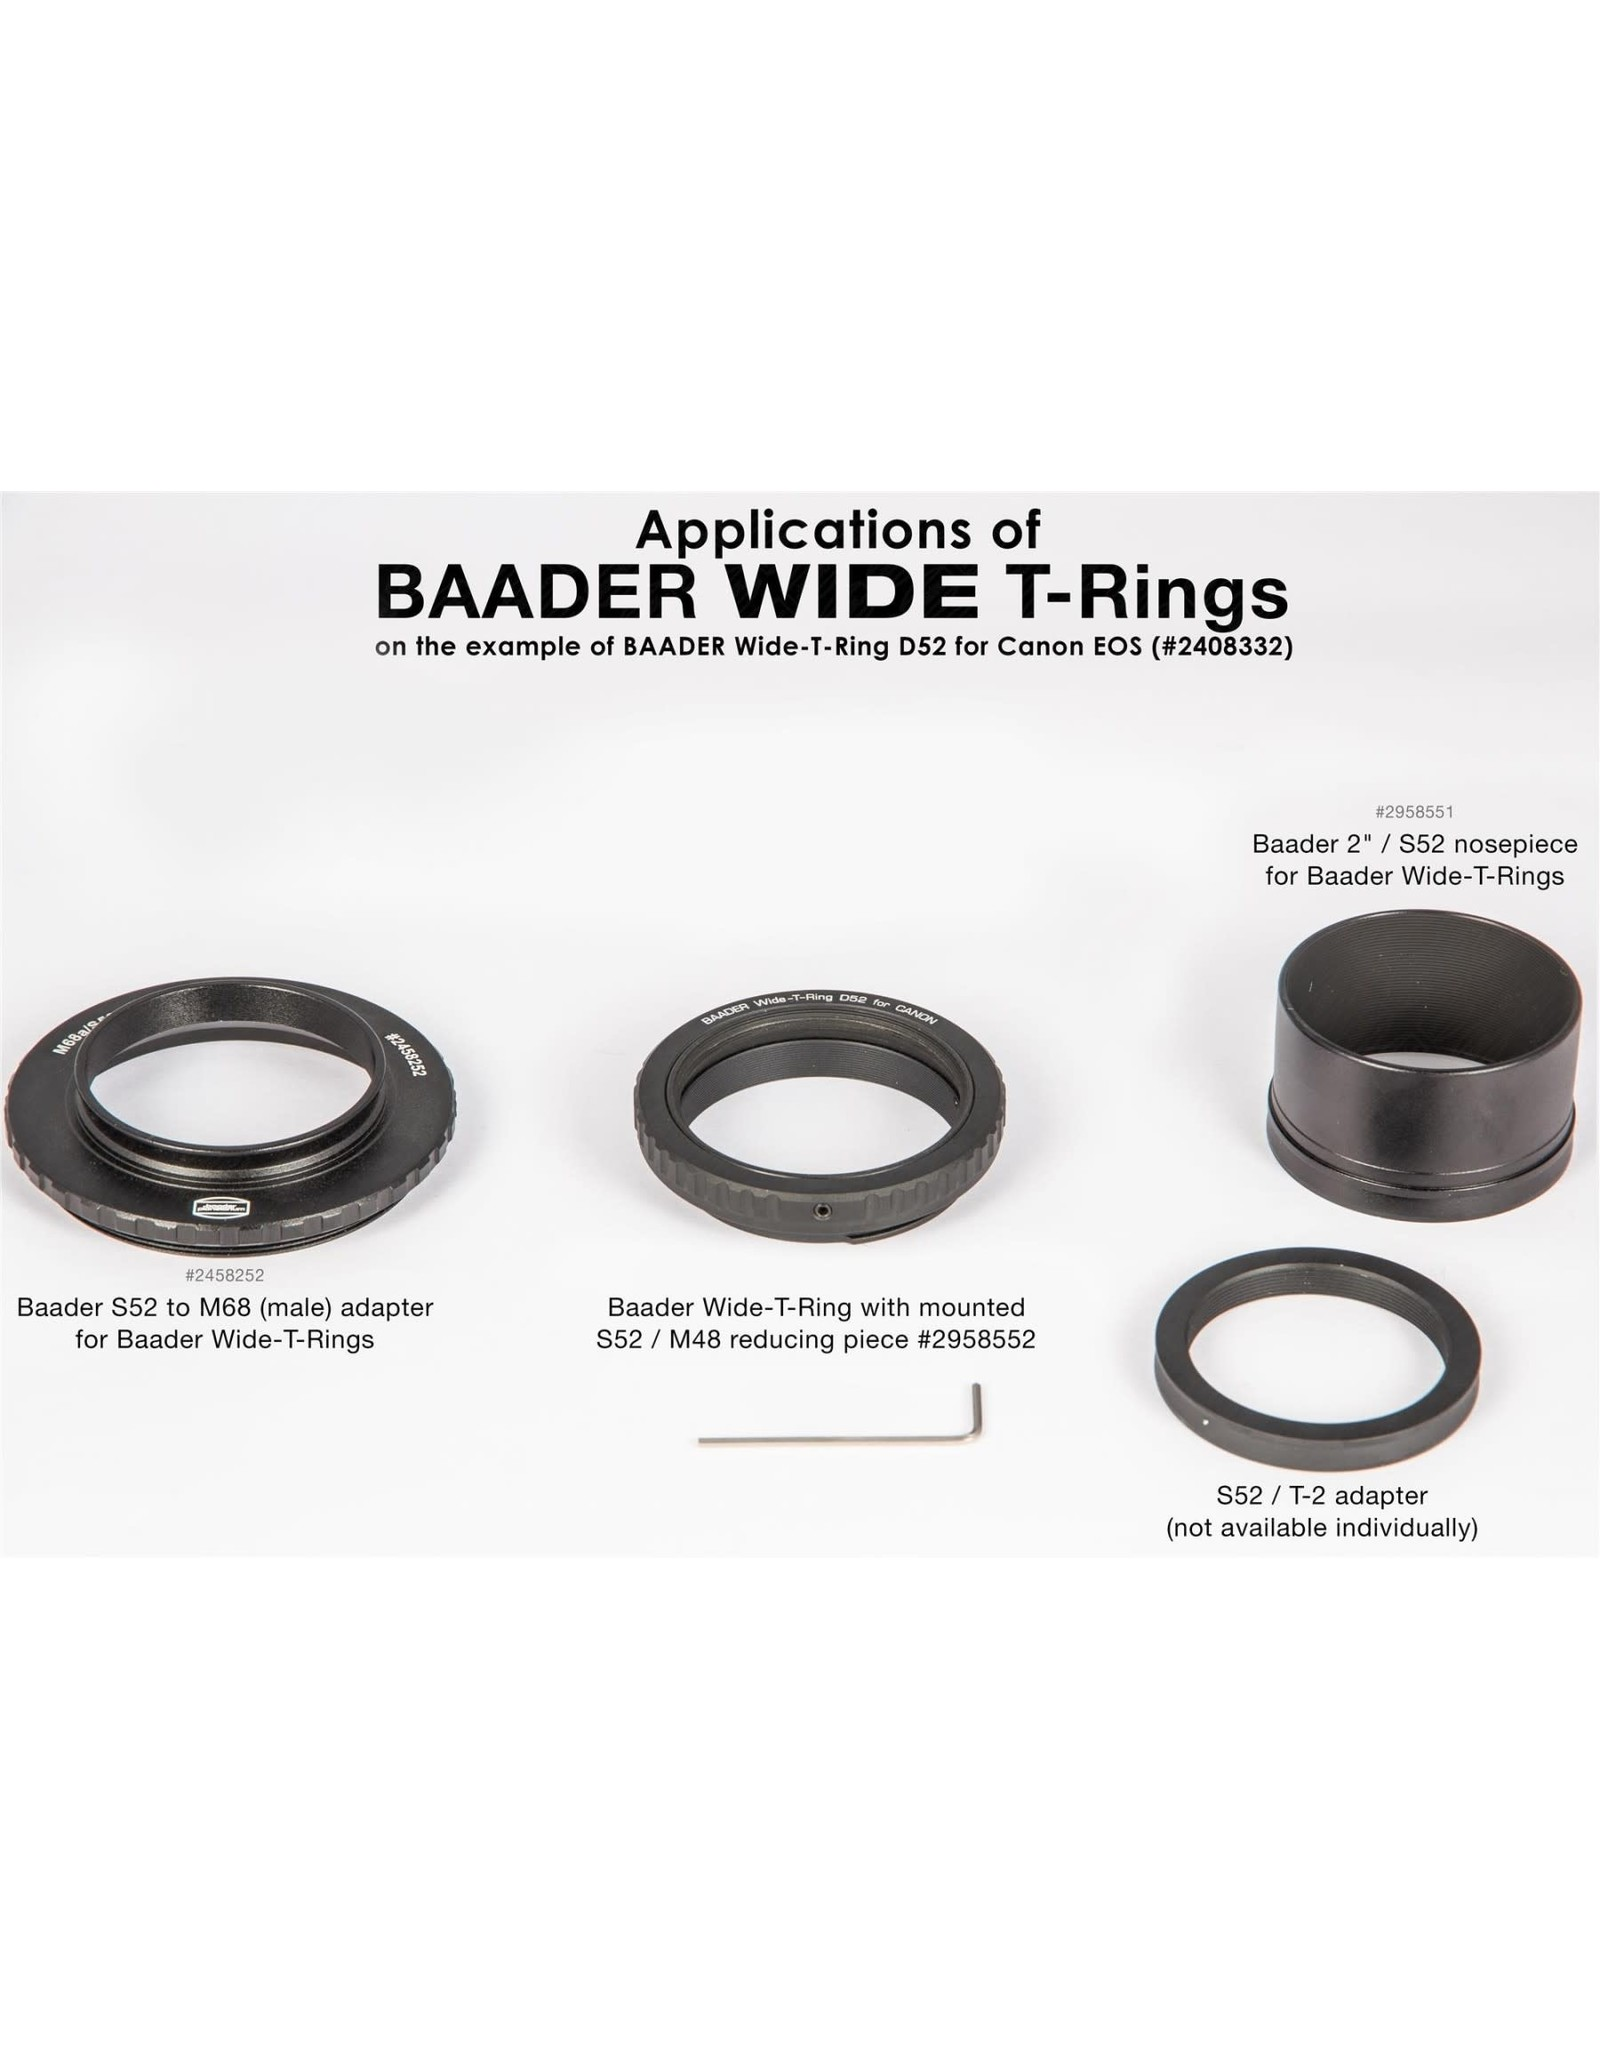 Baader Planetarium Baader Wide-T-Ring Canon EOS with D52i to T-2 and S52